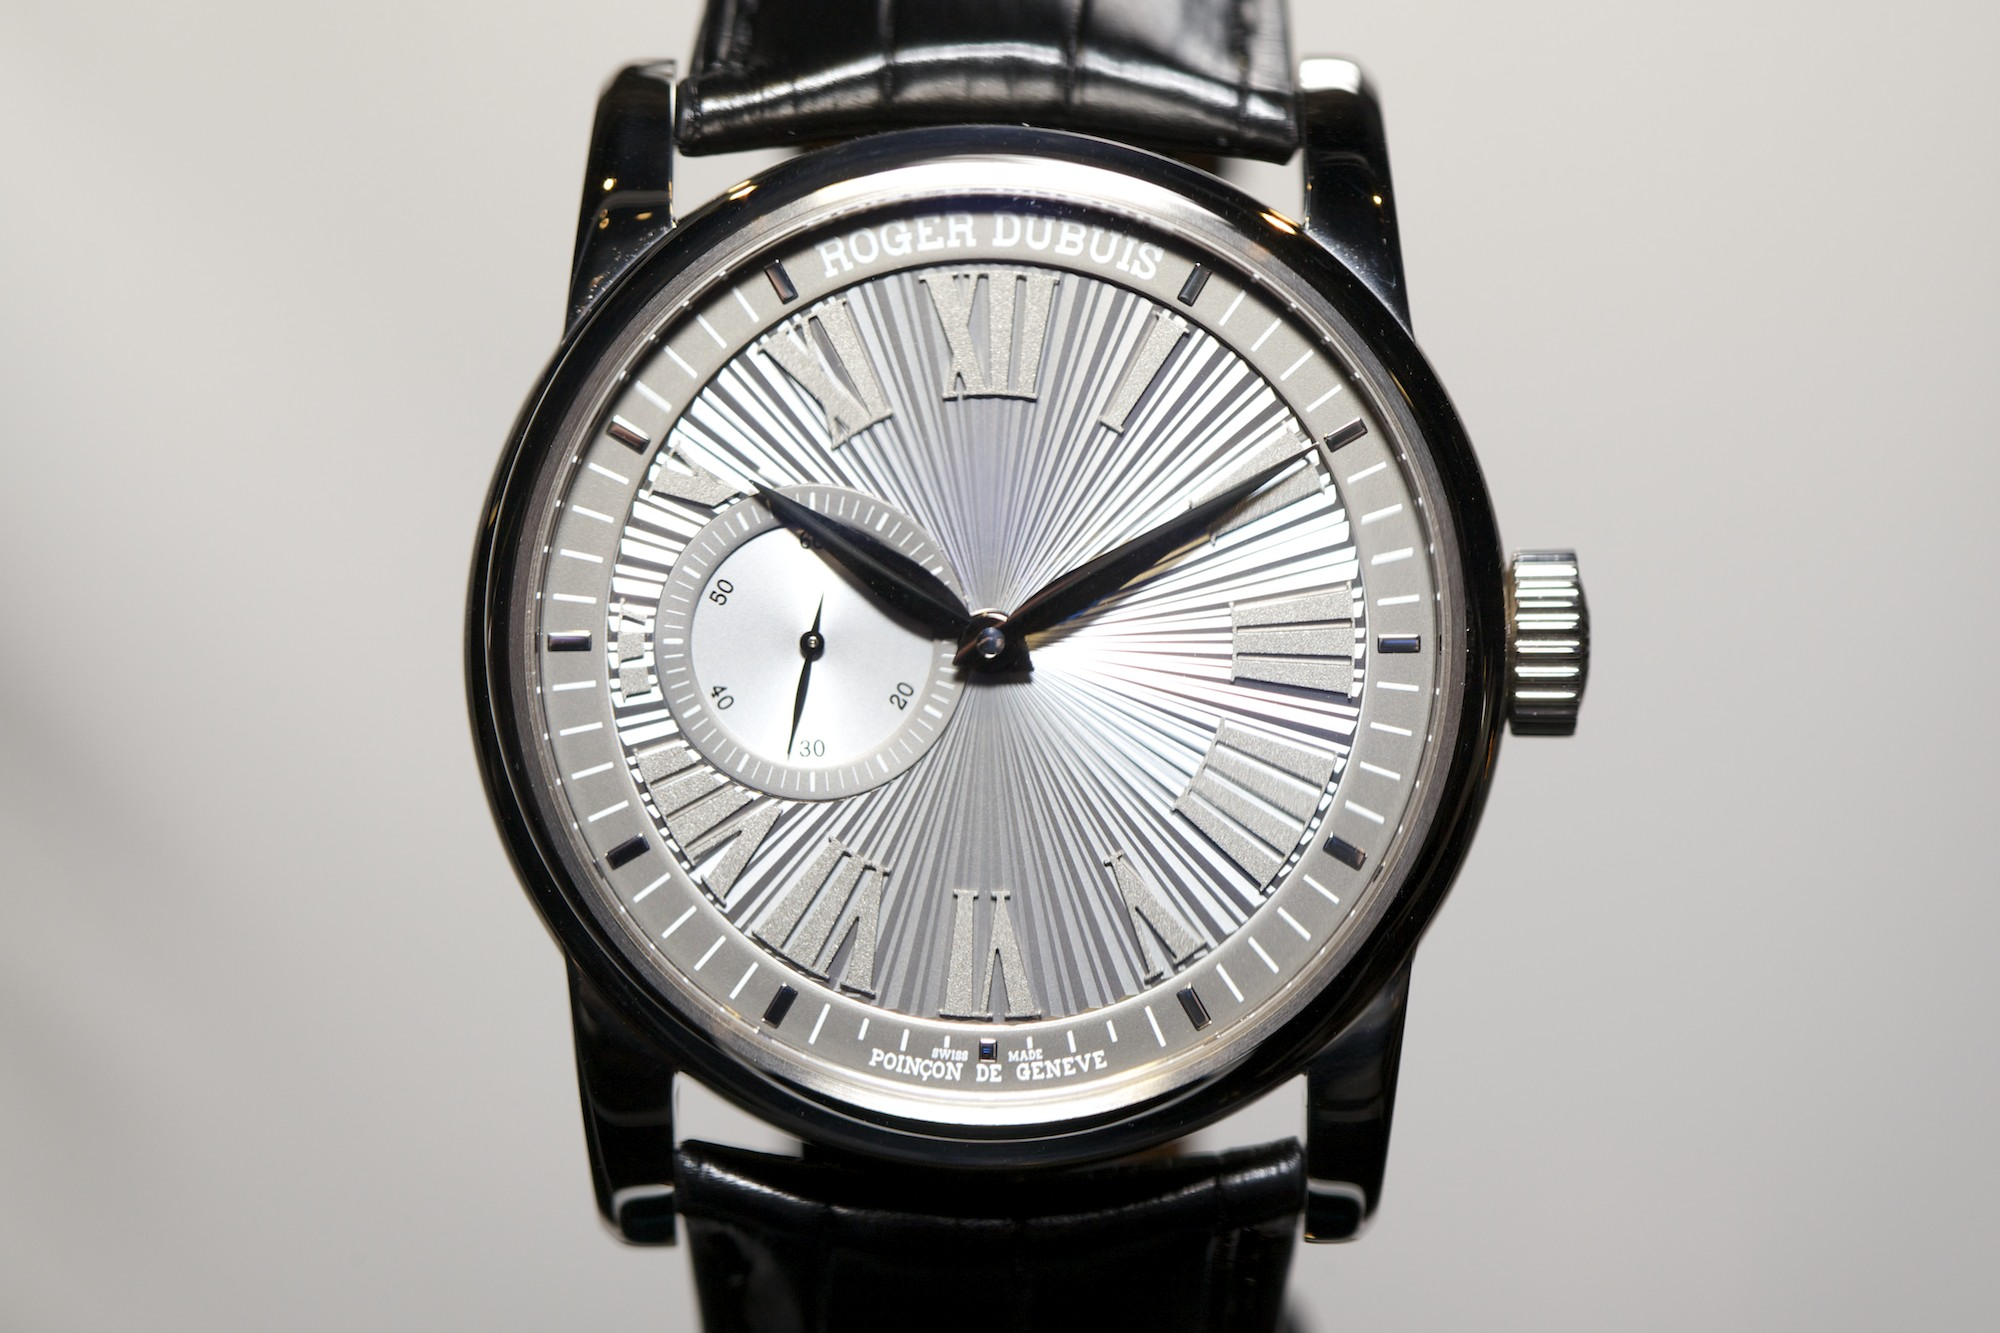 Roger Dubuis RD620